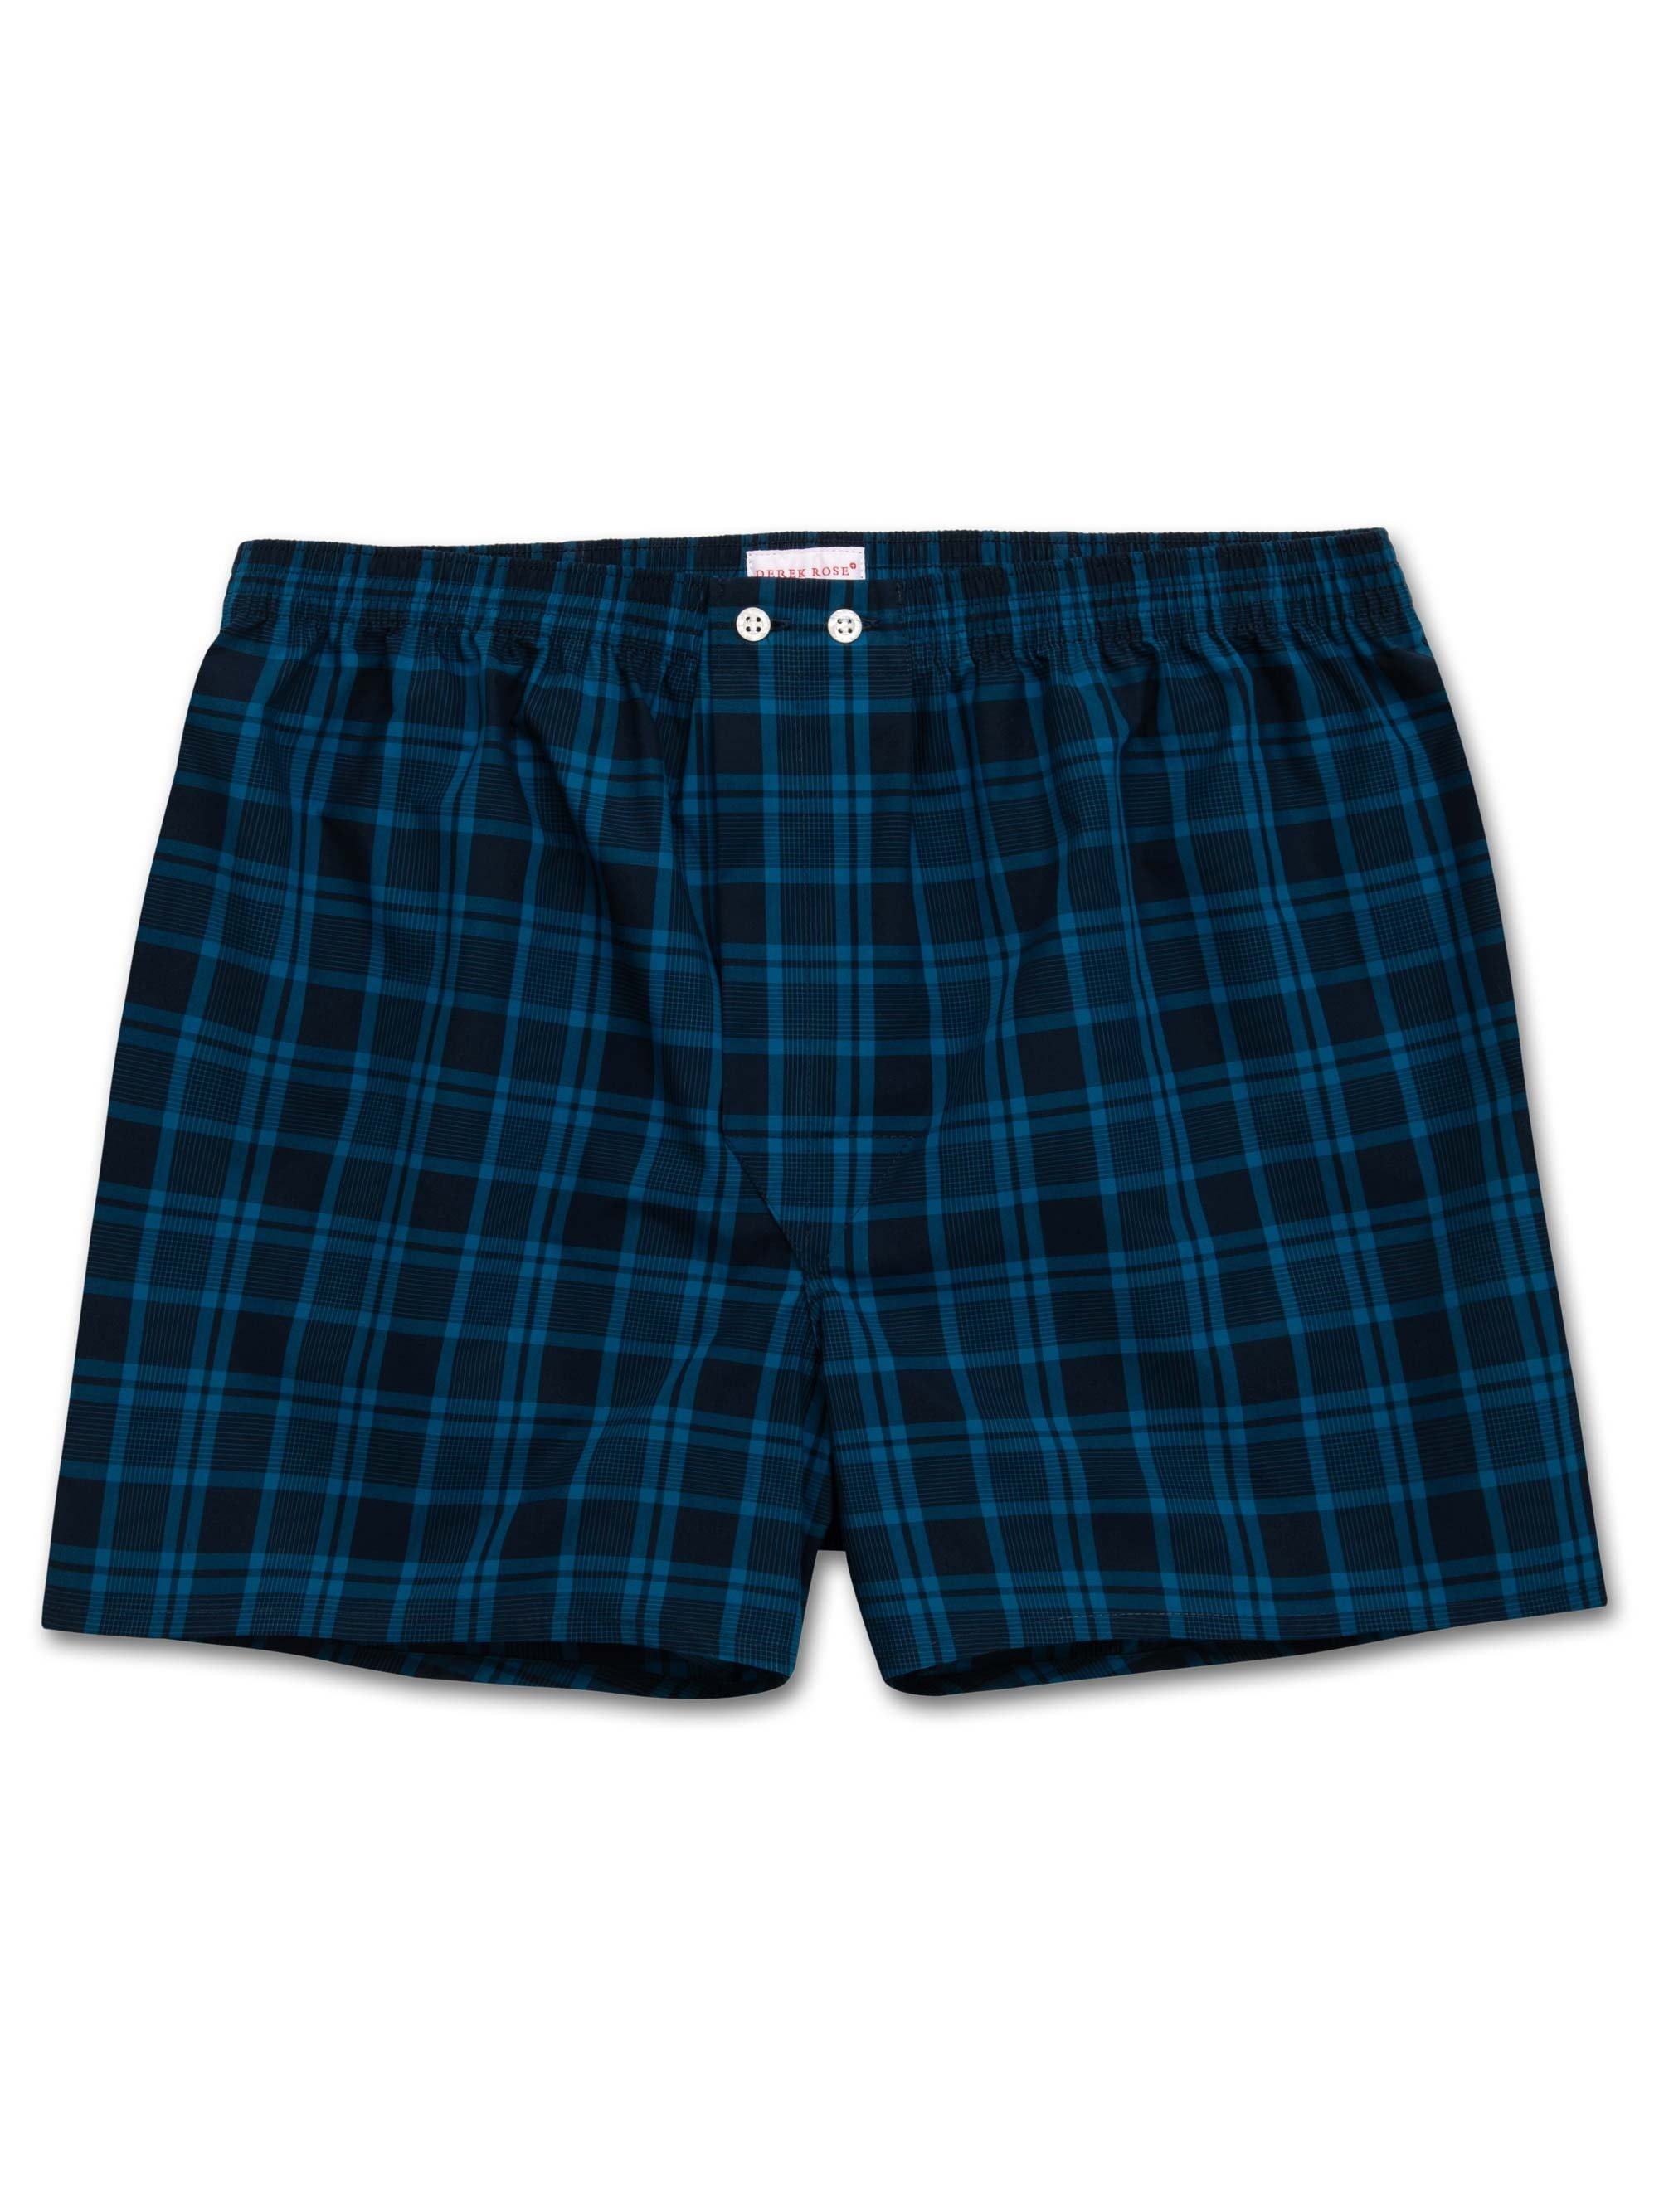 Men's Classic Fit Boxer Shorts Barker 24 Cotton Check Navy